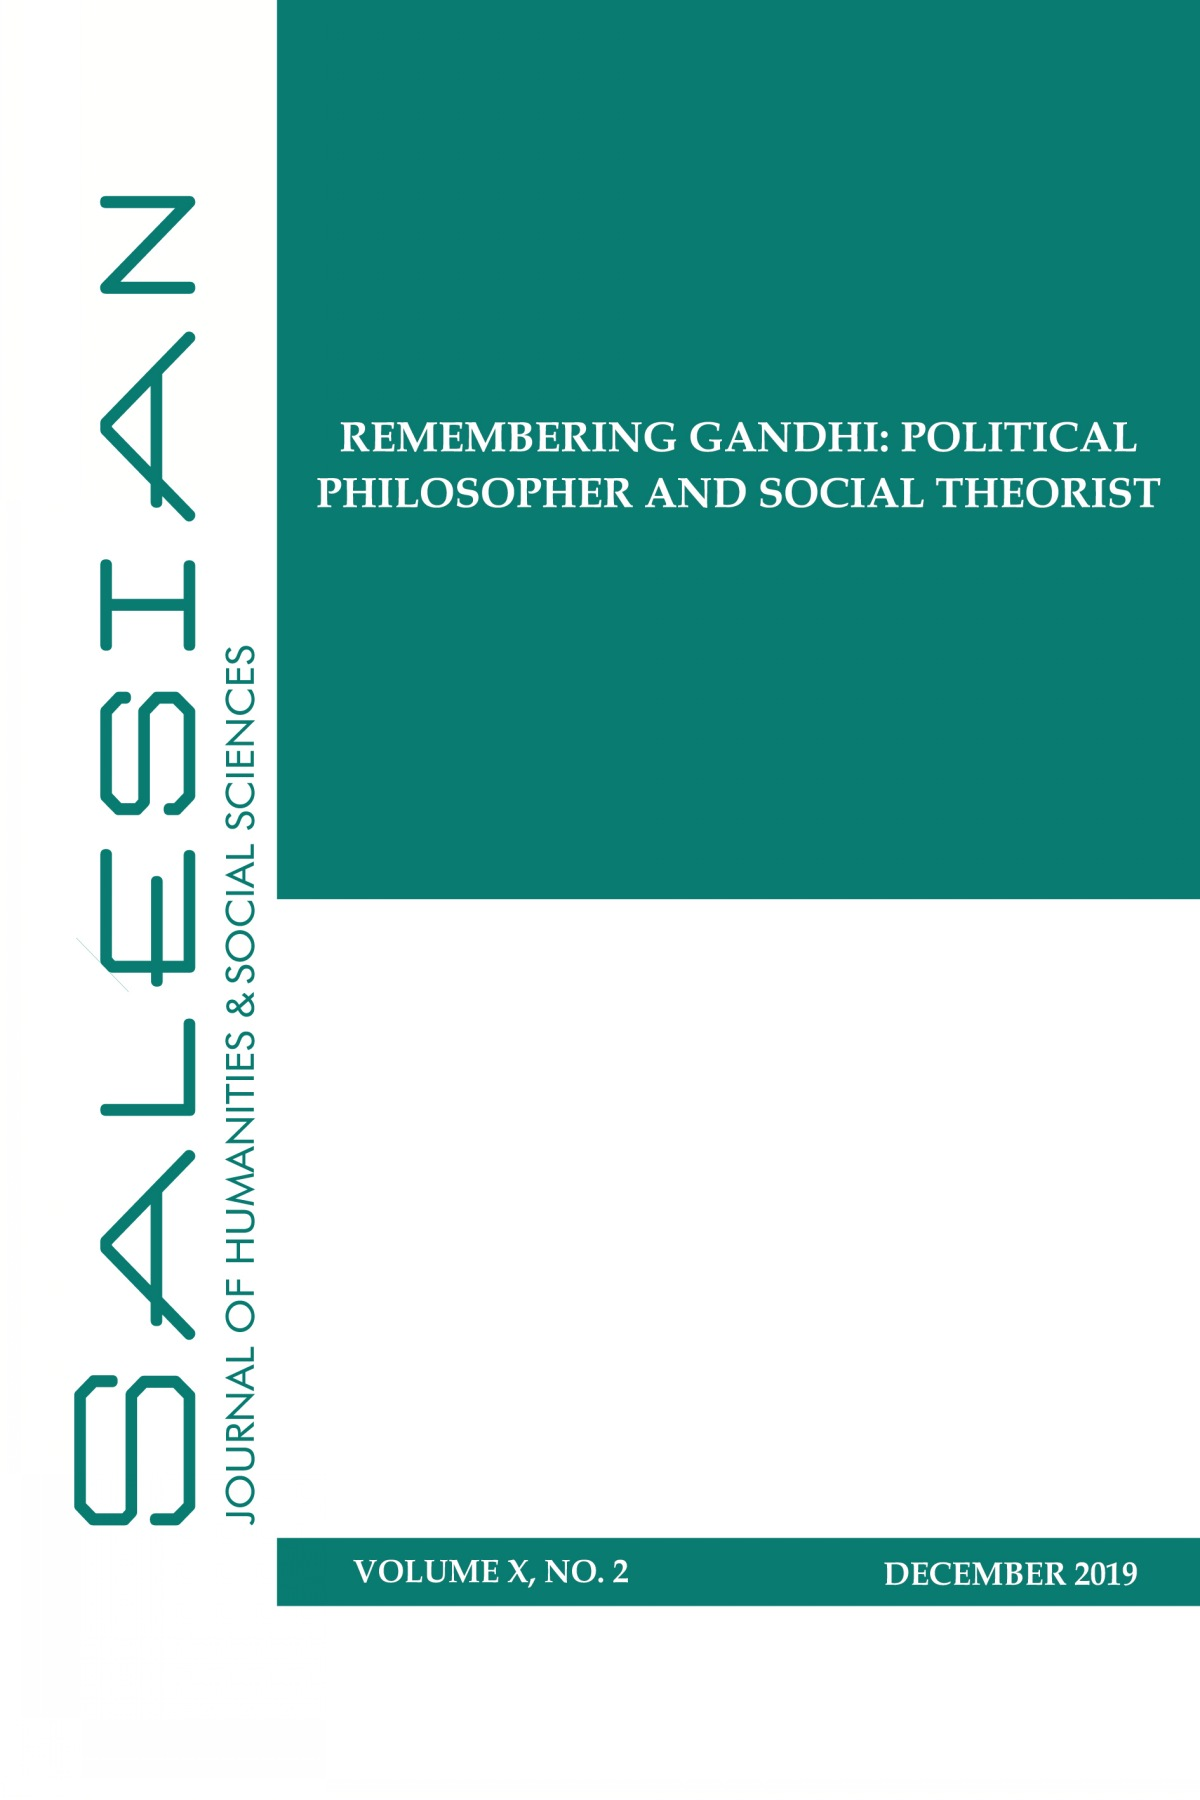 Gandhi as Political Philosopher and Social Theorist